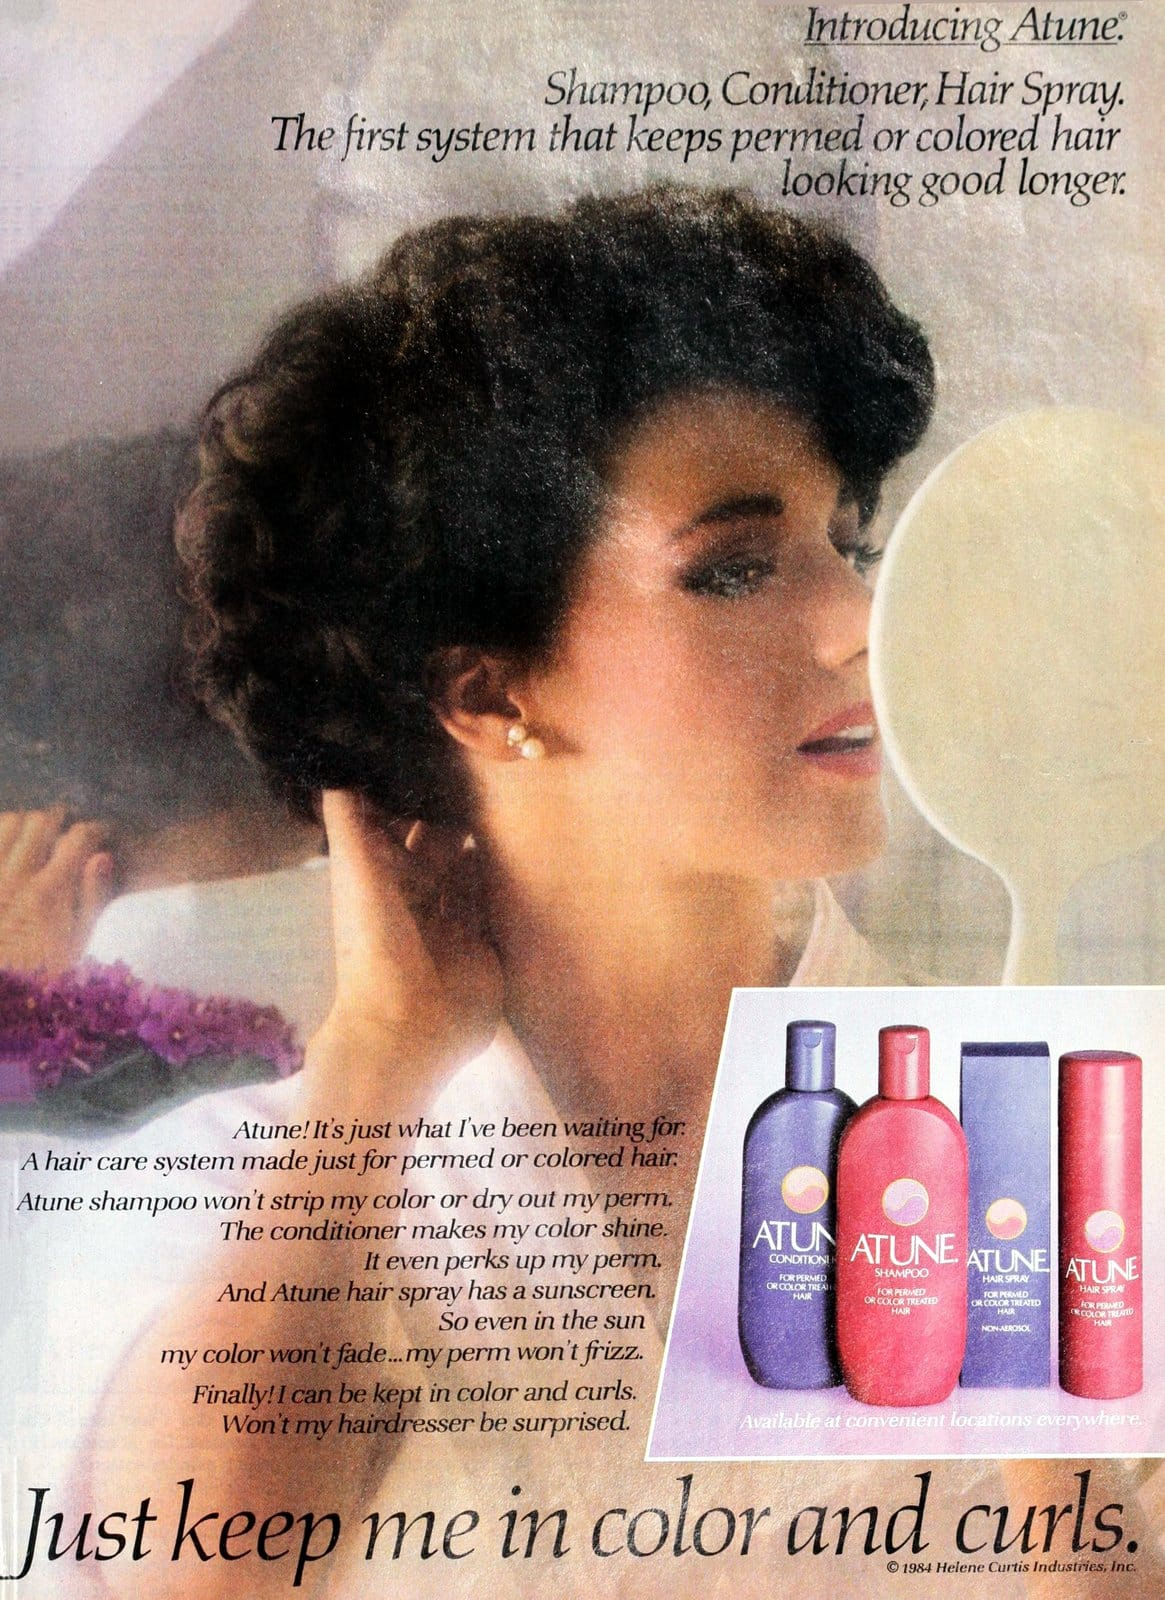 Atune shampoo and haircare from Helene Curtis (1985)